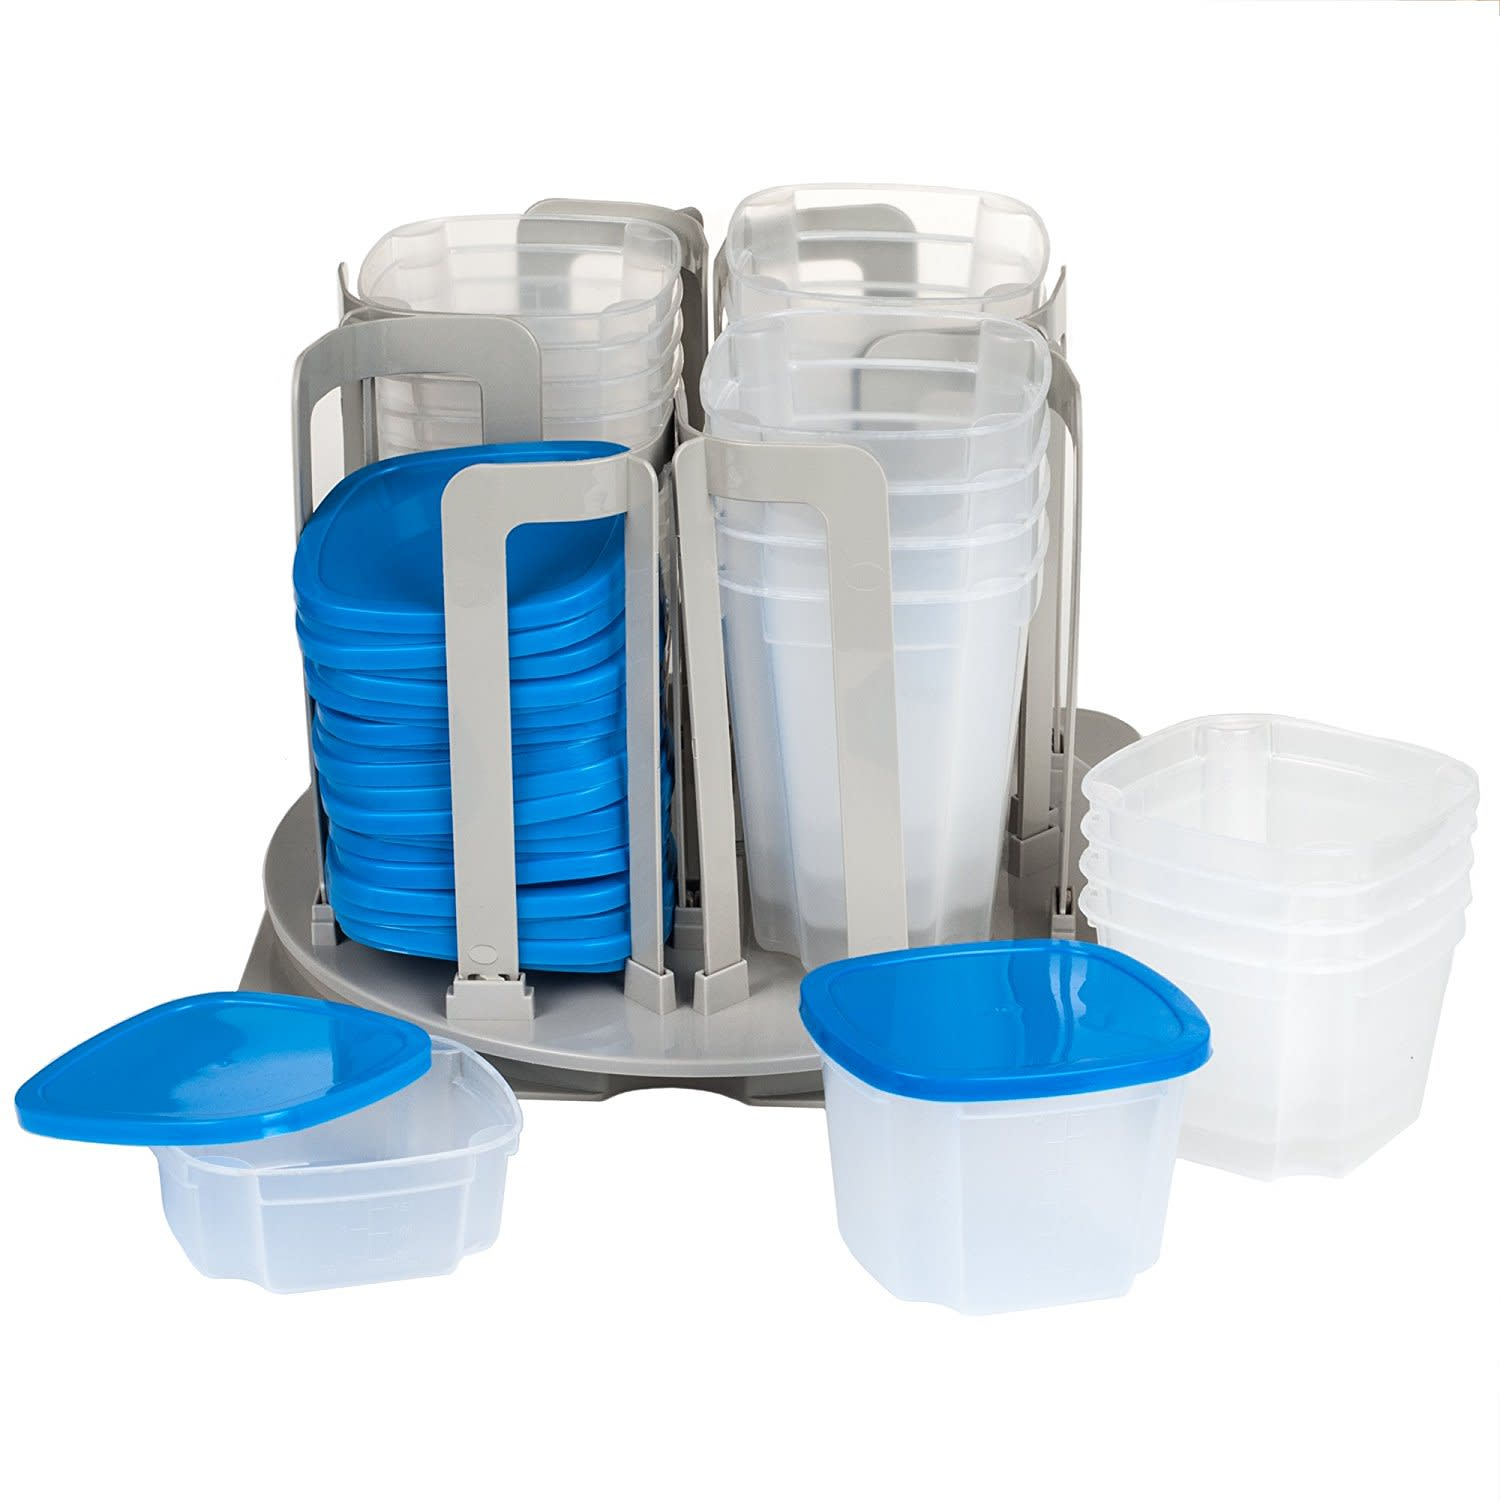 Organizing Solutions For Food Storage Containers Kitchn